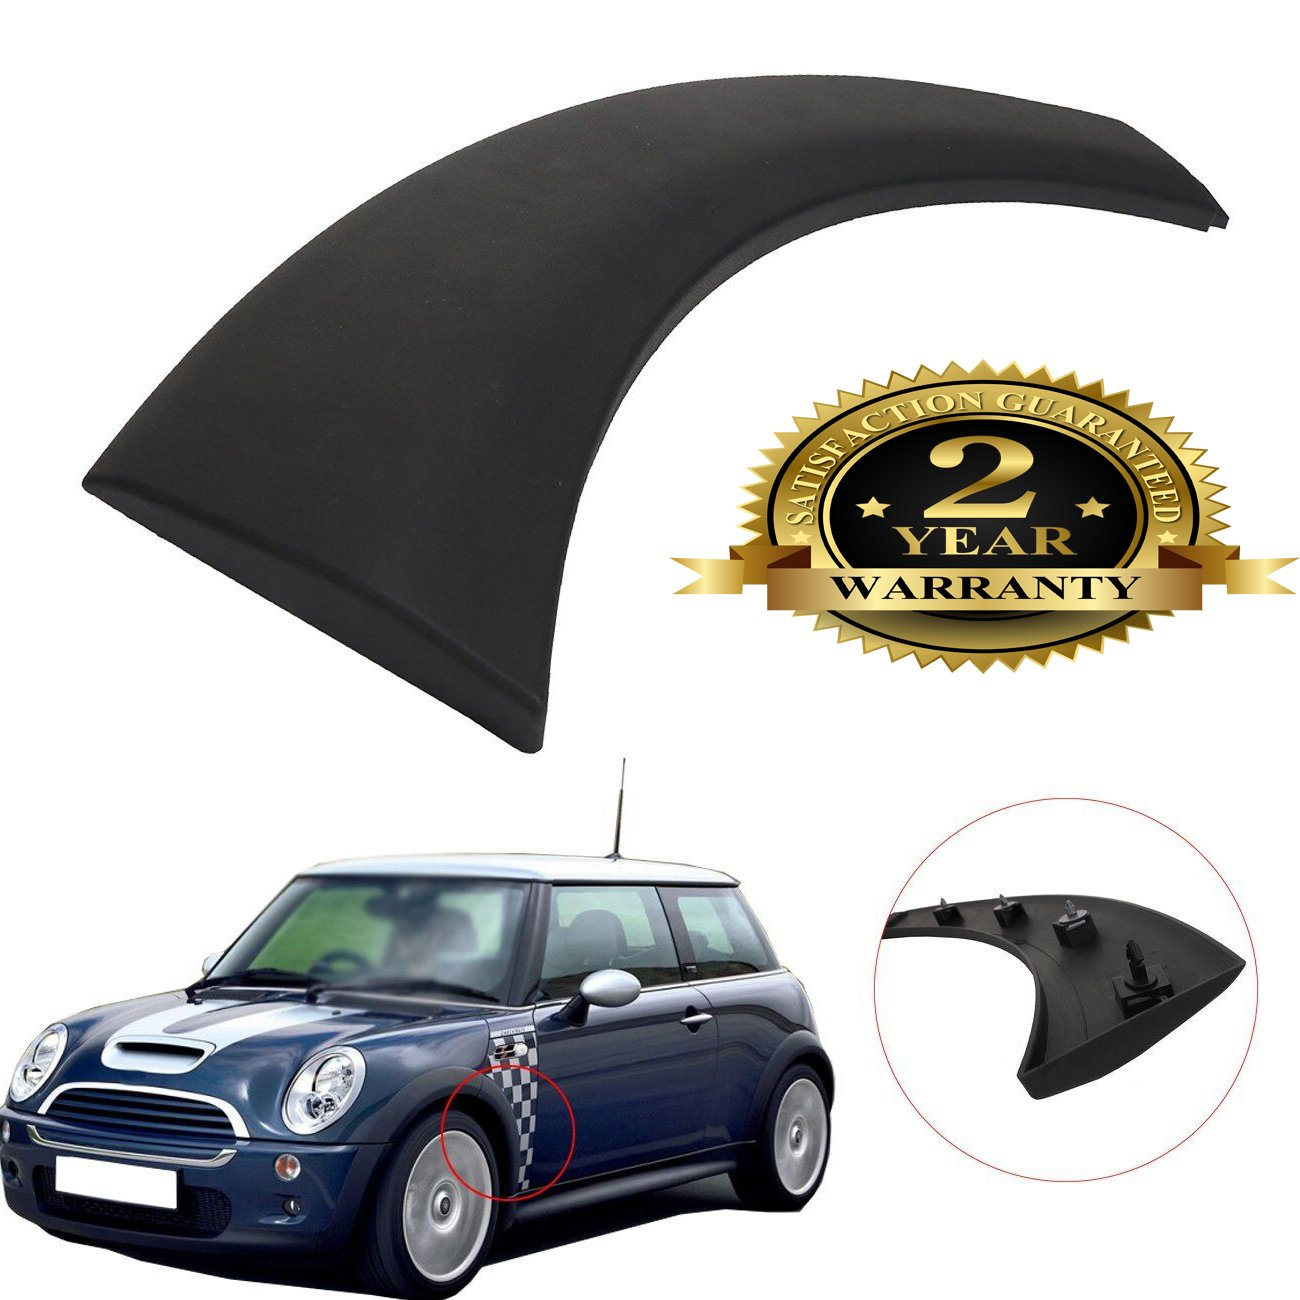 Wheel Arch Trim Cover for Mini Cooper Fender Flares Fender Mud Flaps Clips for One D Cooper S R50 R52 R53 2002 to 2008 Front Left